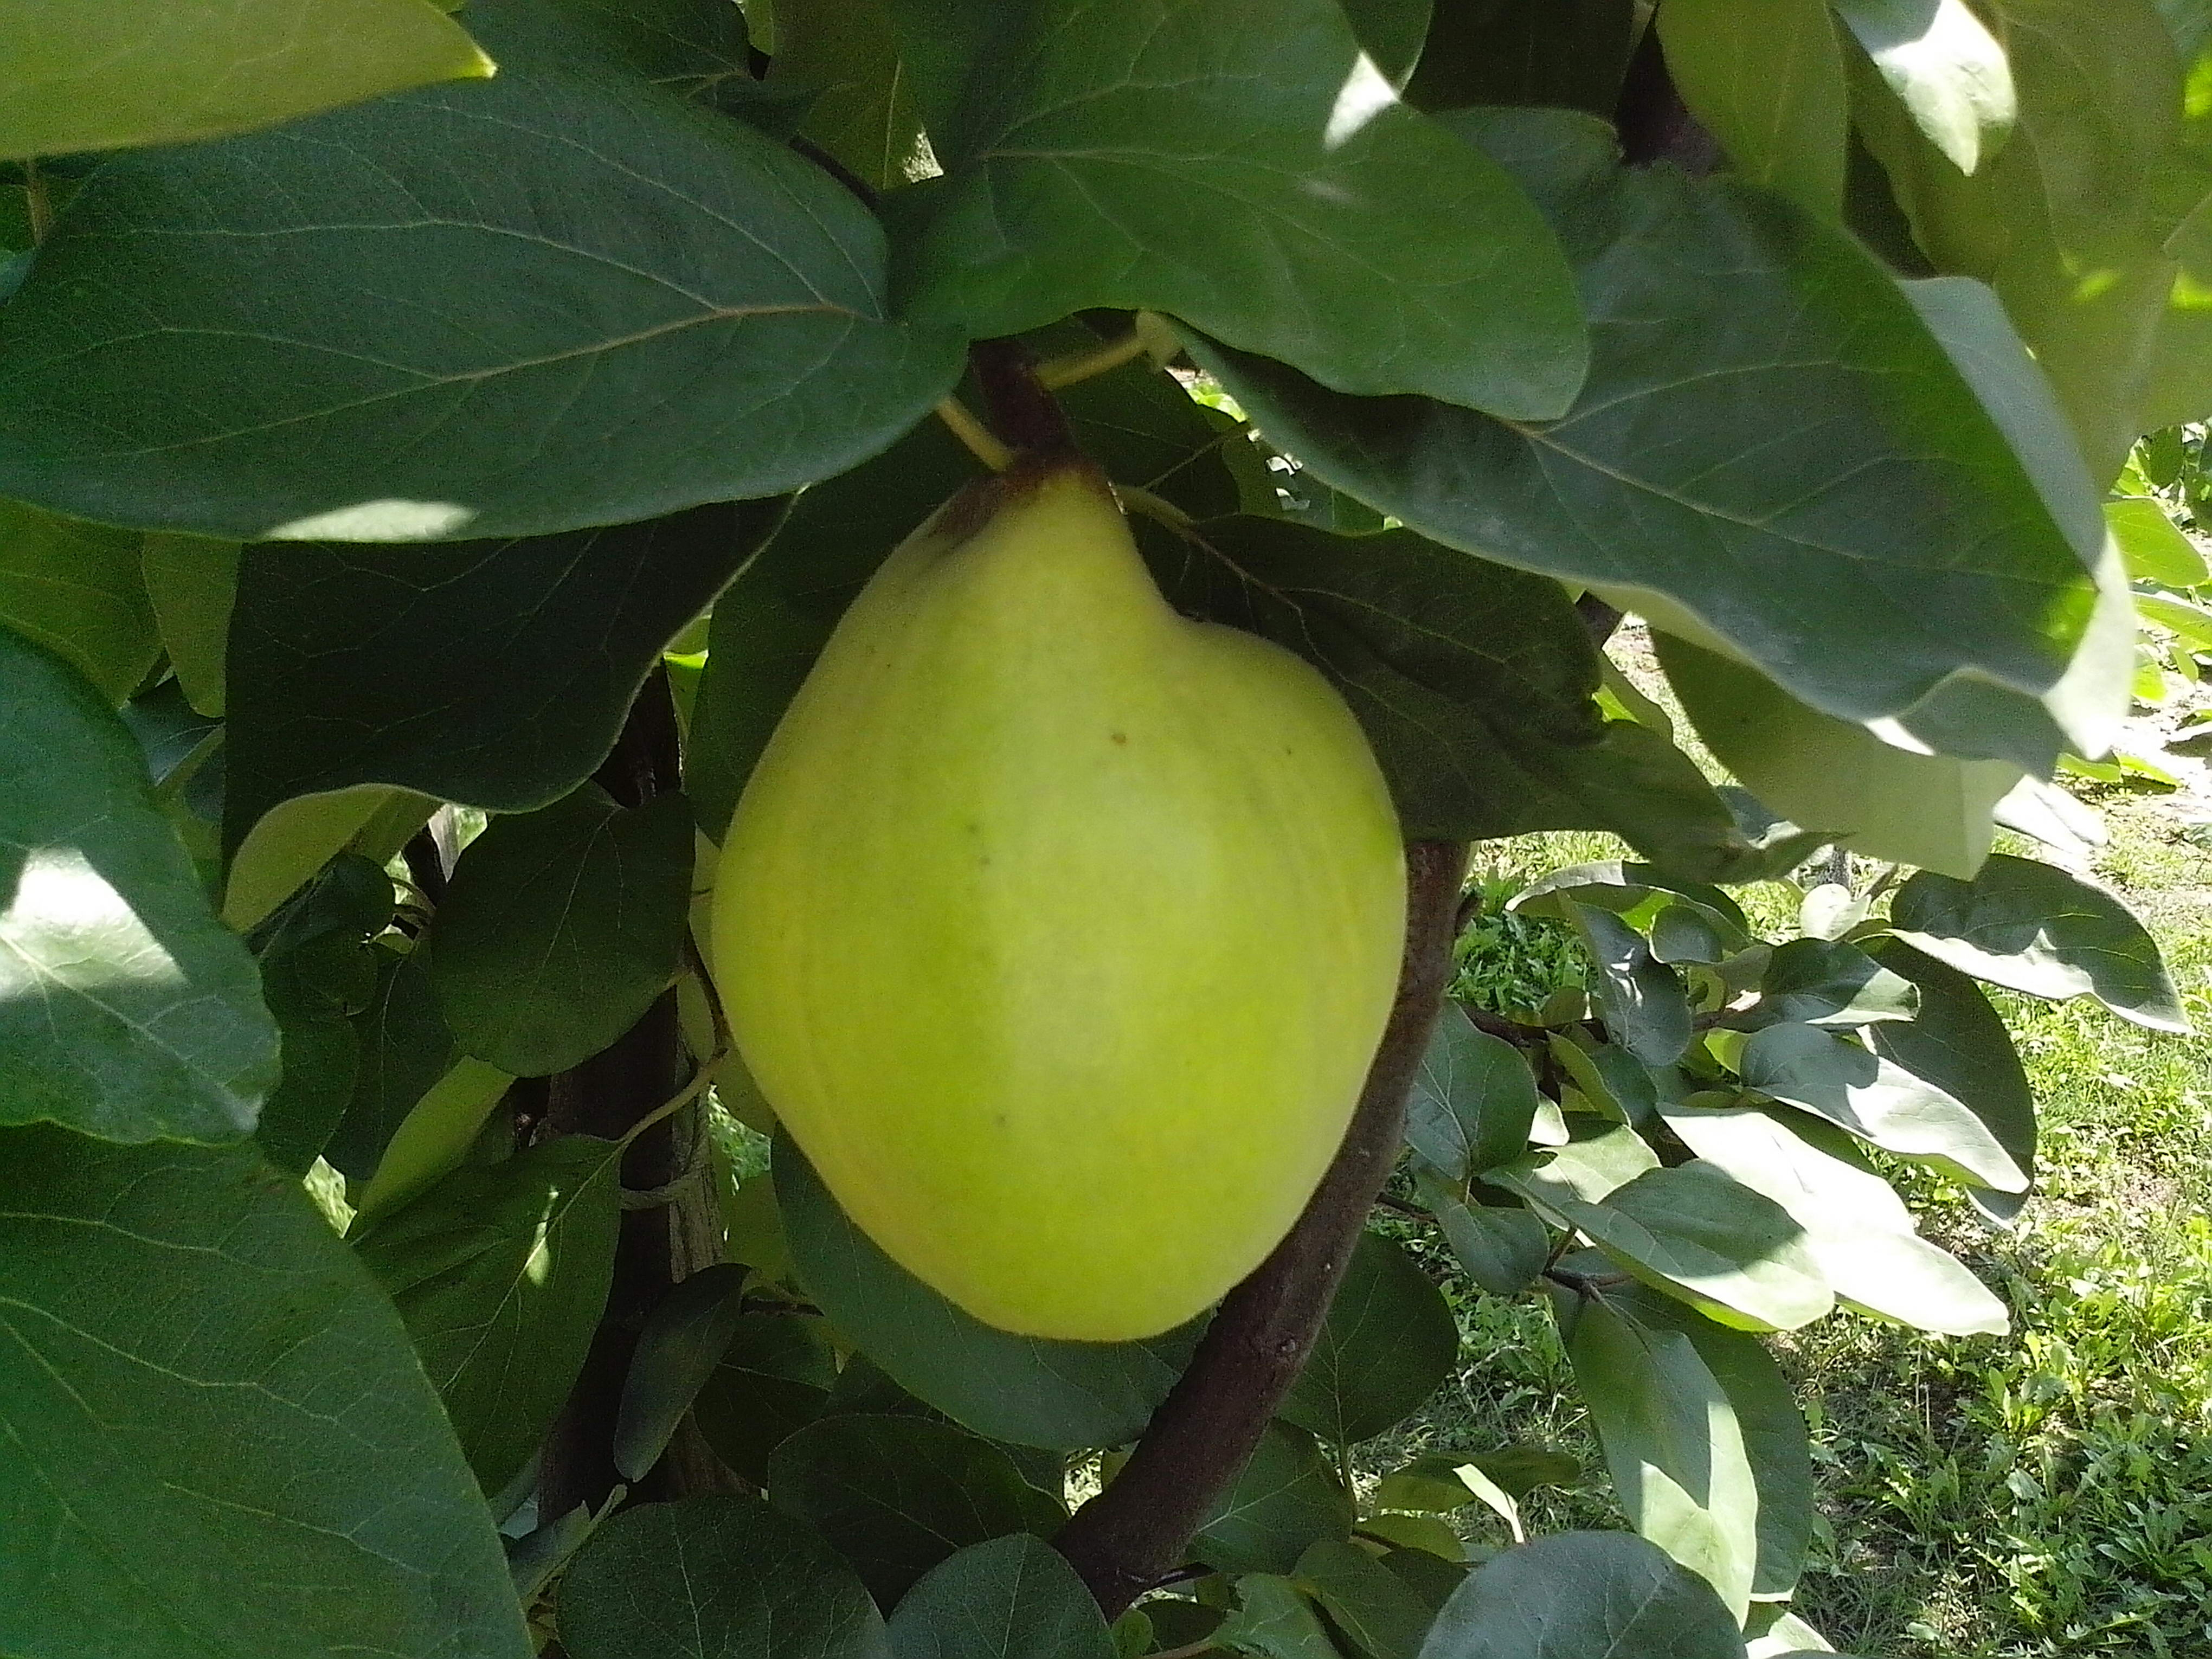 Free photograph; organically, grown, immature, quince, fruit, green, leaves, tree